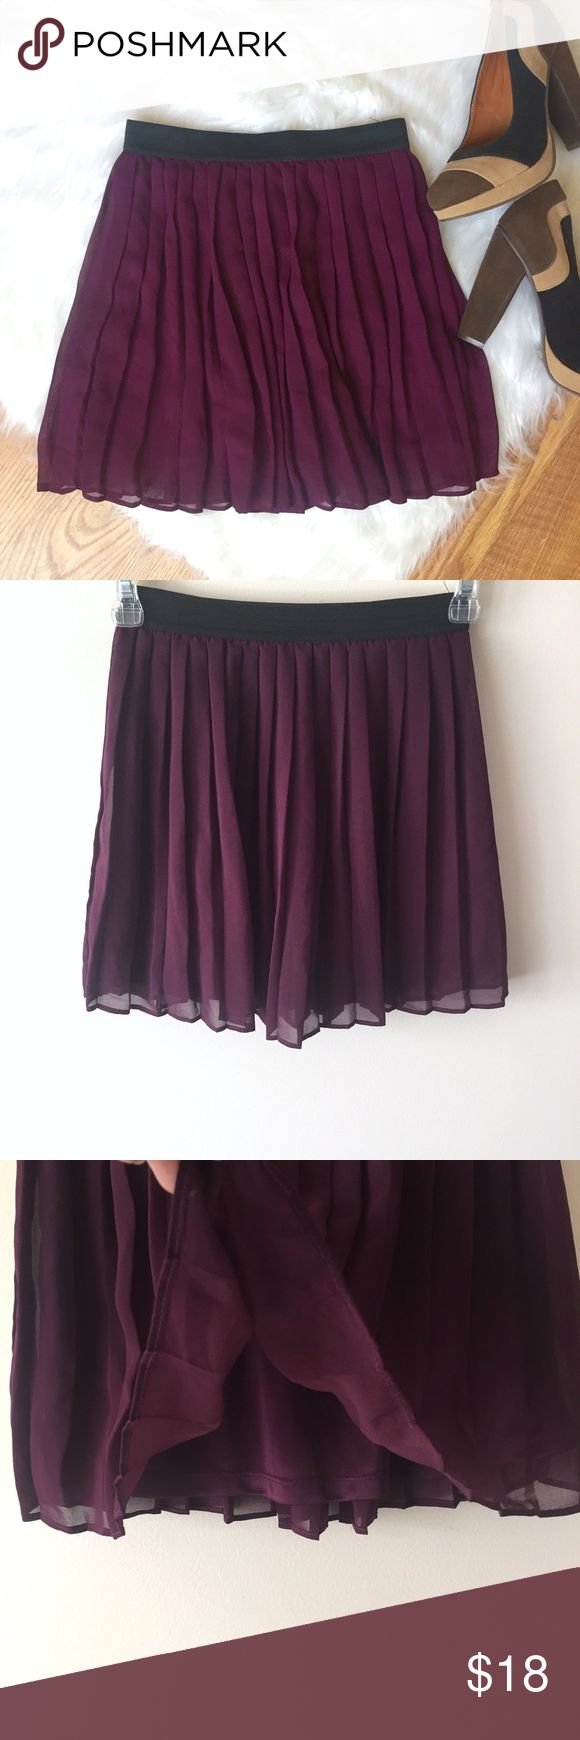 F21 Burgundy Skirt F21 Burgundy Skirt   A playful burgundy skirt by Forever 21. Chiffon like pleated outer with a silky lining. Stretchy elastic waistband. Perfect condition! Size S Length 15 inches Waist 12 inches (not stretched) Forever 21 Skirts